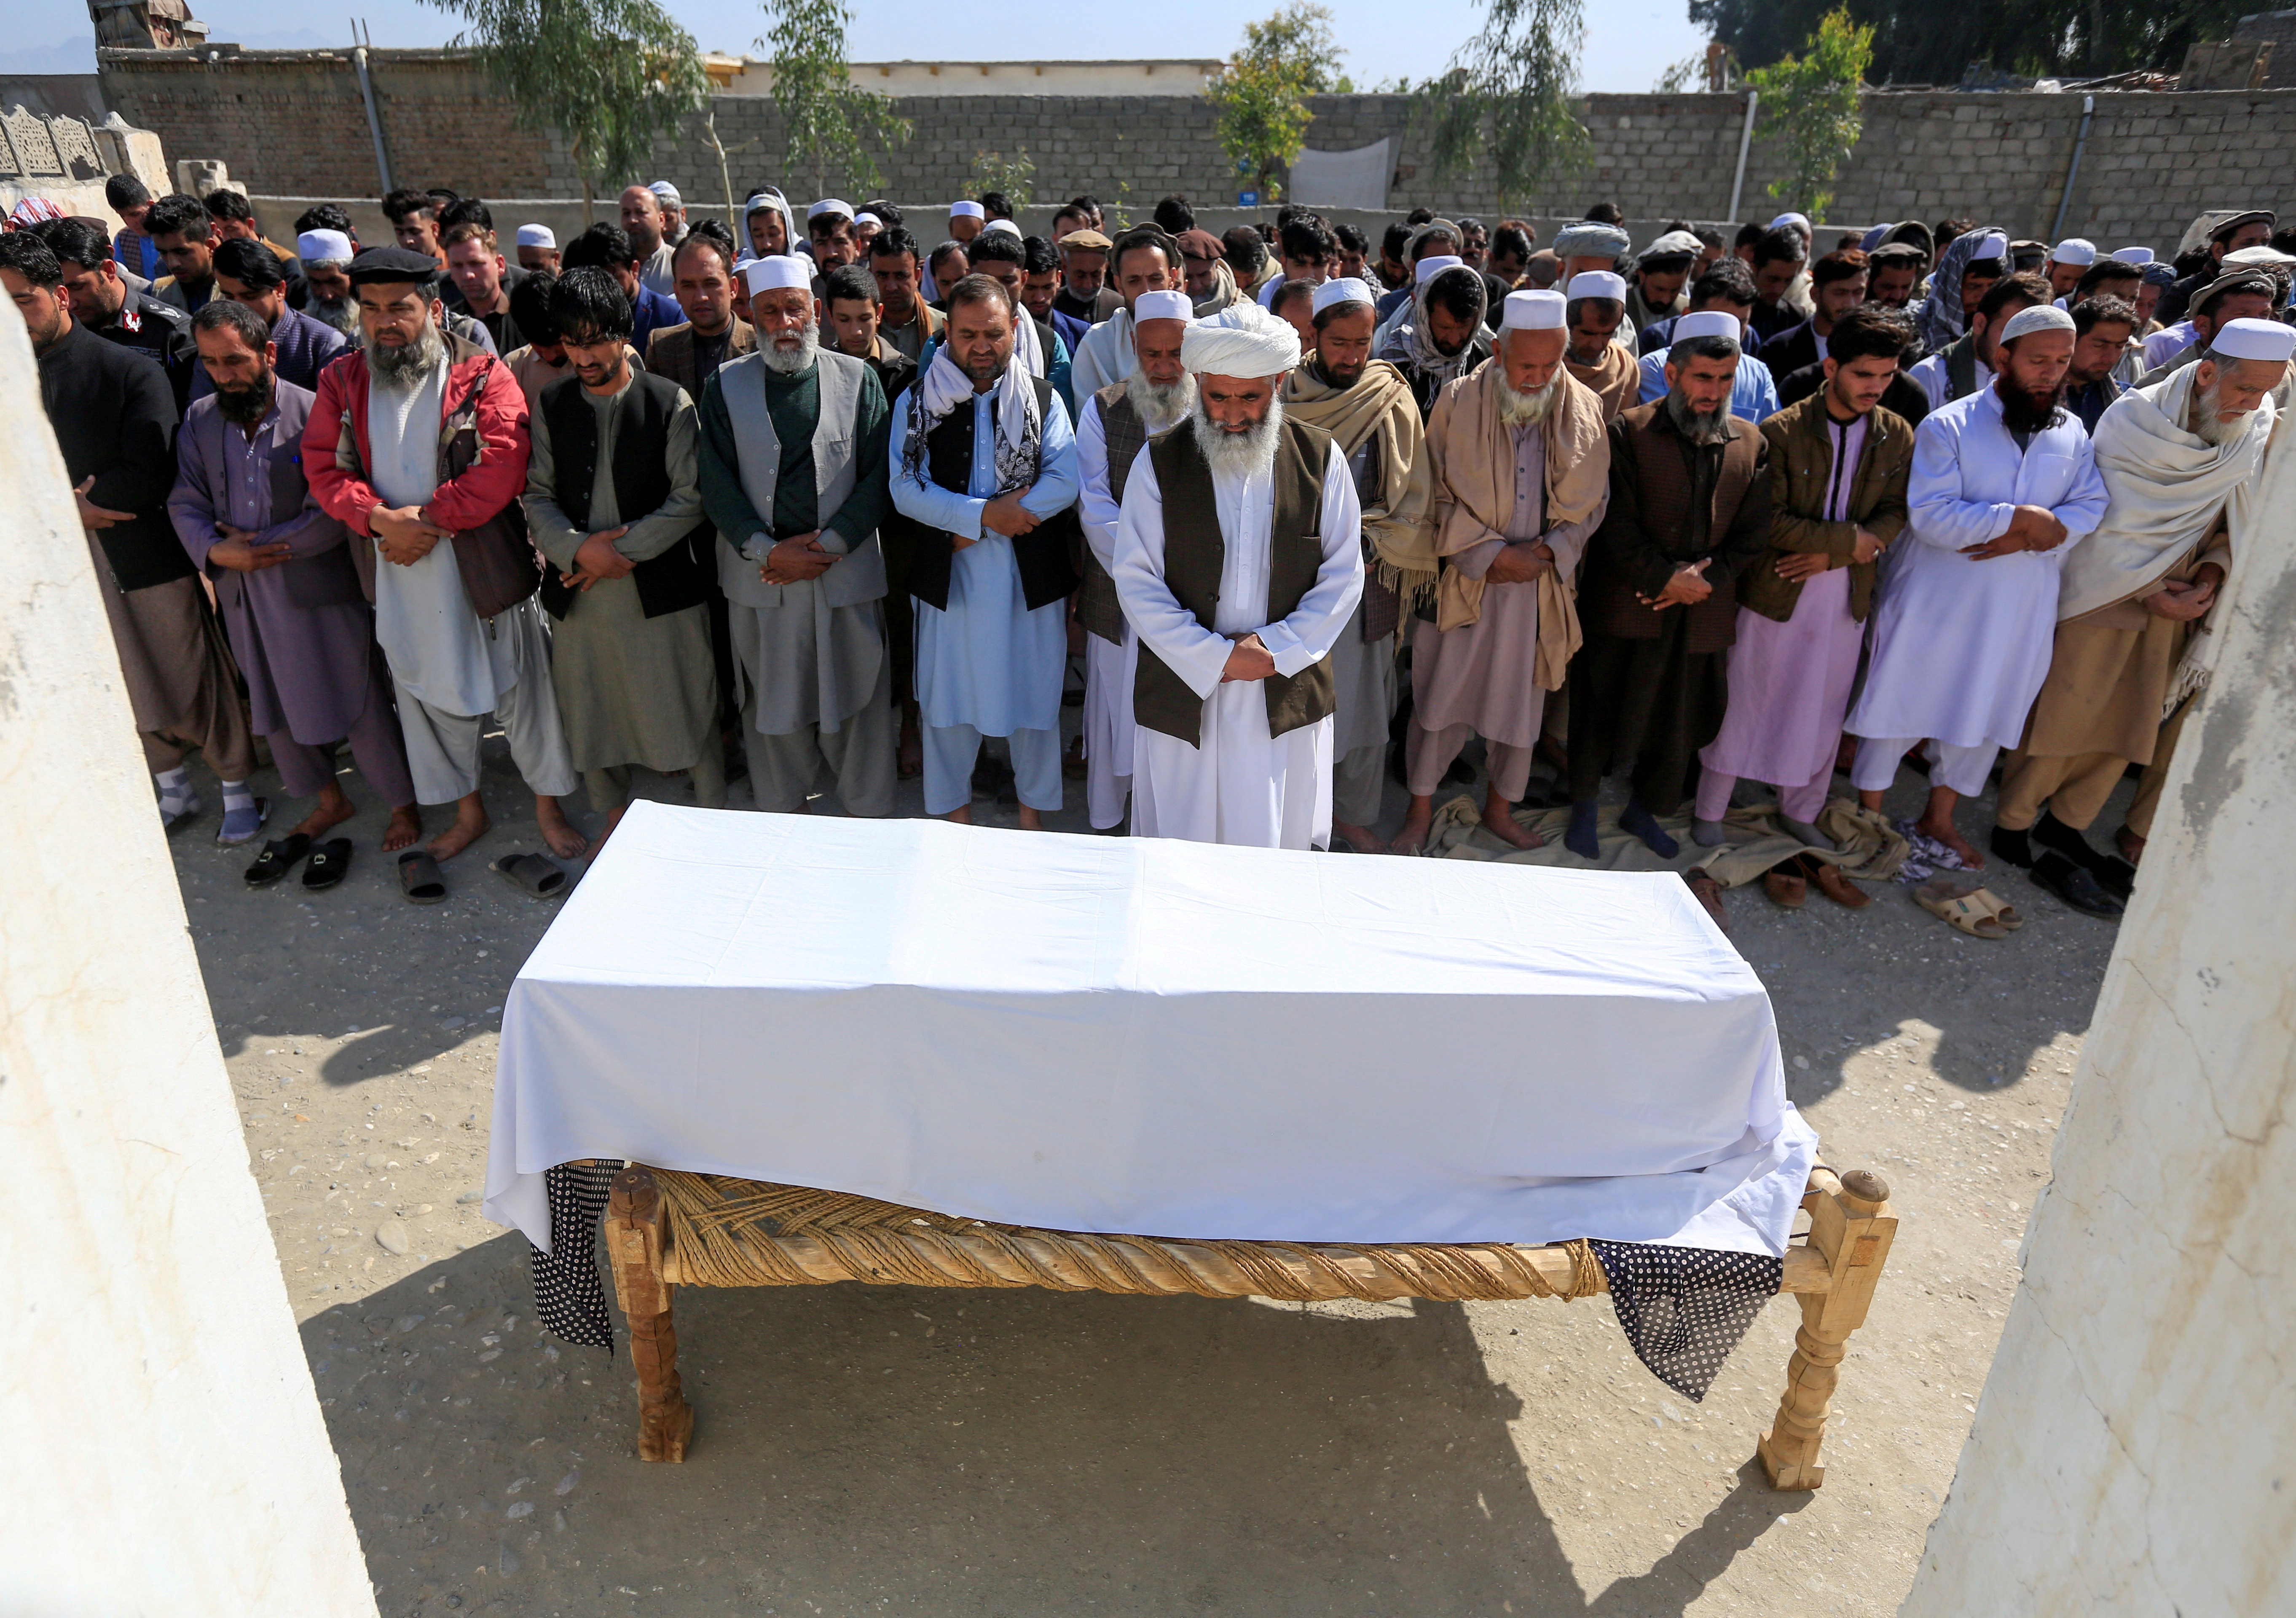 Afghan men pray in front of the coffin of one of three female media workers who were shot and killed by unknown gunmen, in Jalalabad, Afghanistan March 3, 2021. REUTERS/Parwiz/